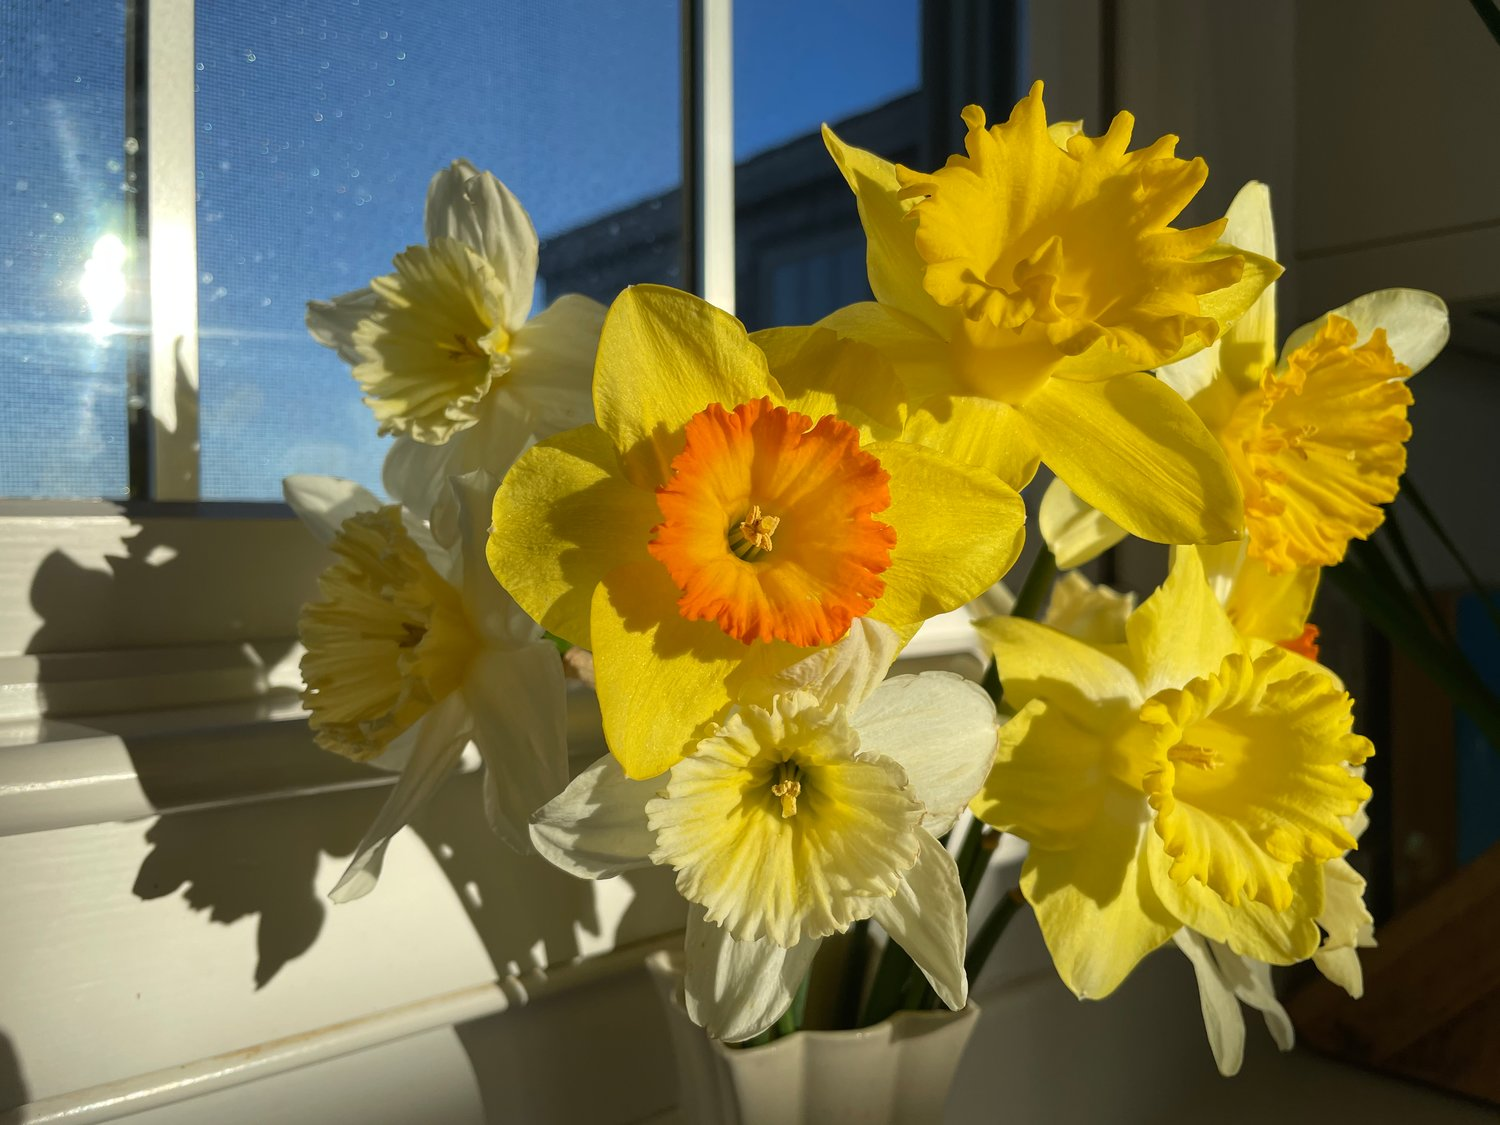 Photo by Hannah Judy.A vase of daffodils April 9.